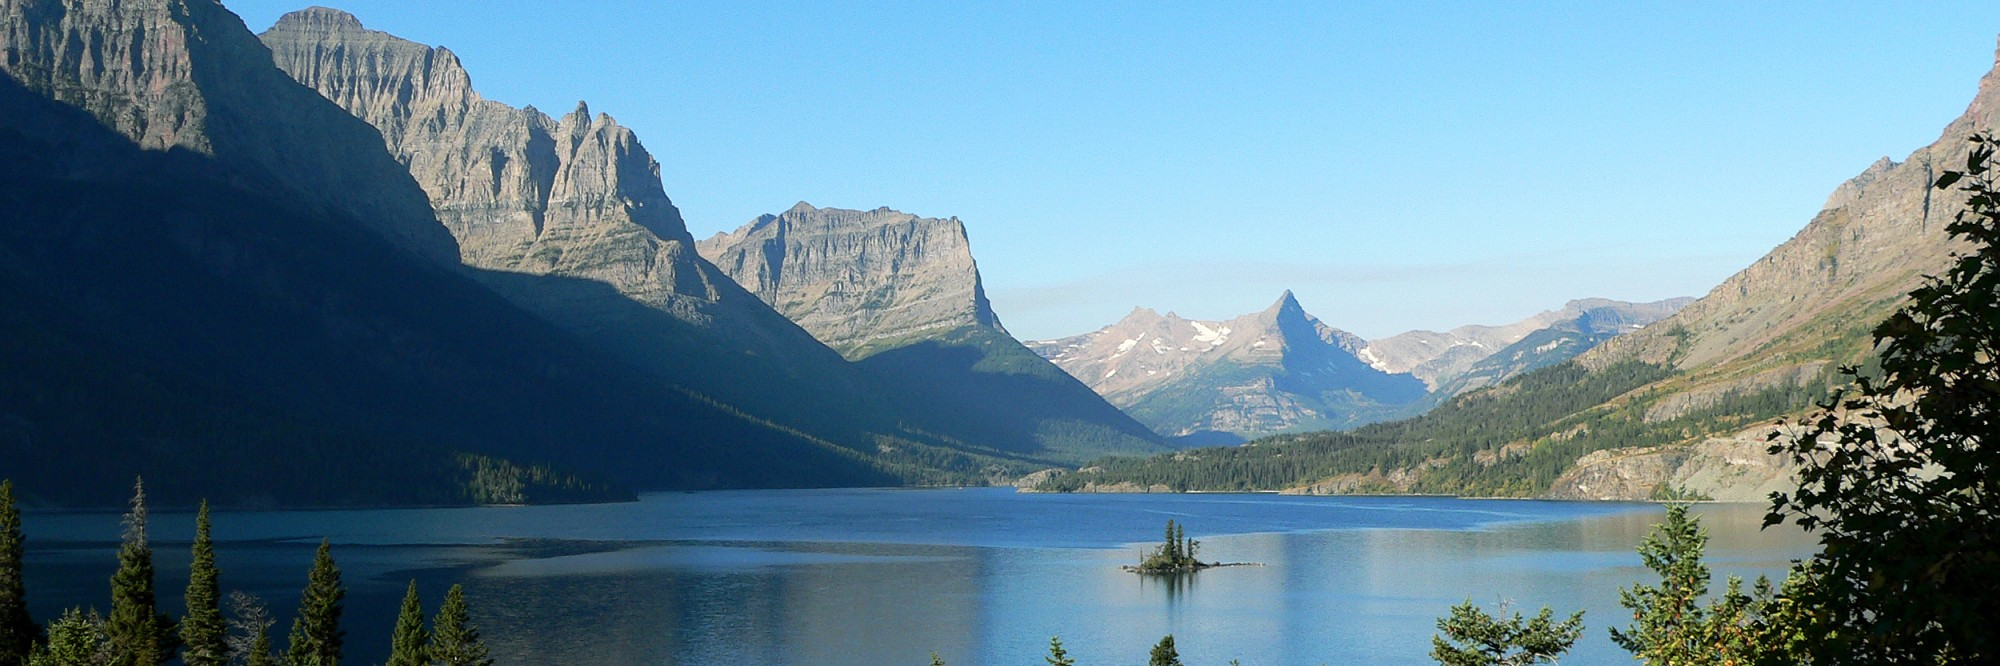 Fietsen door de Rocky Mountains, foto Saint Mary Lake